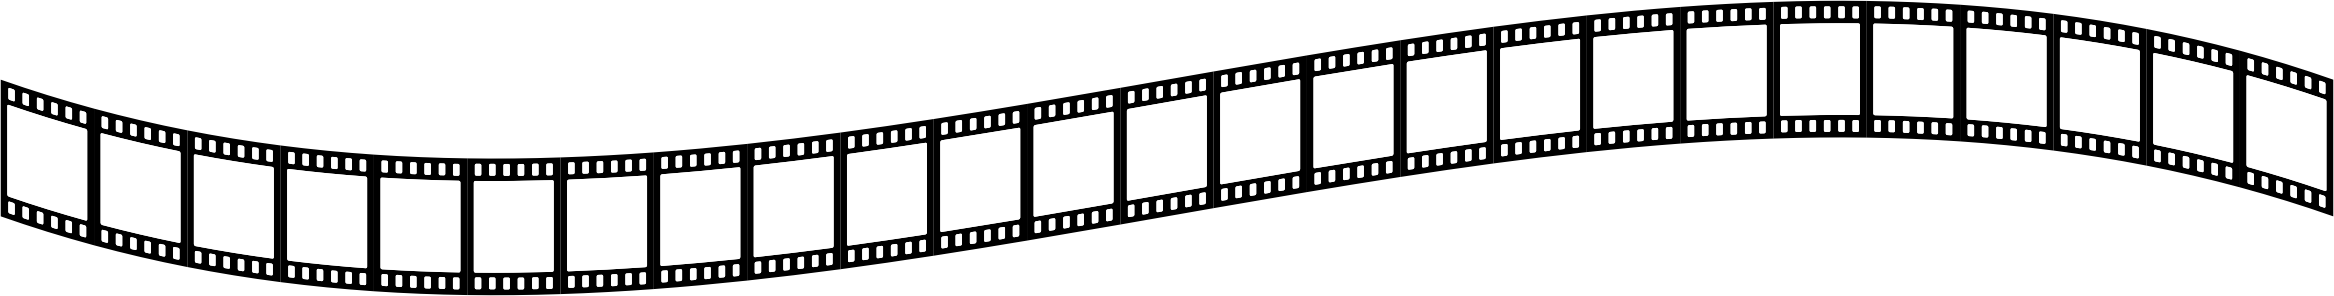 Film strip png. Wavy icons free and